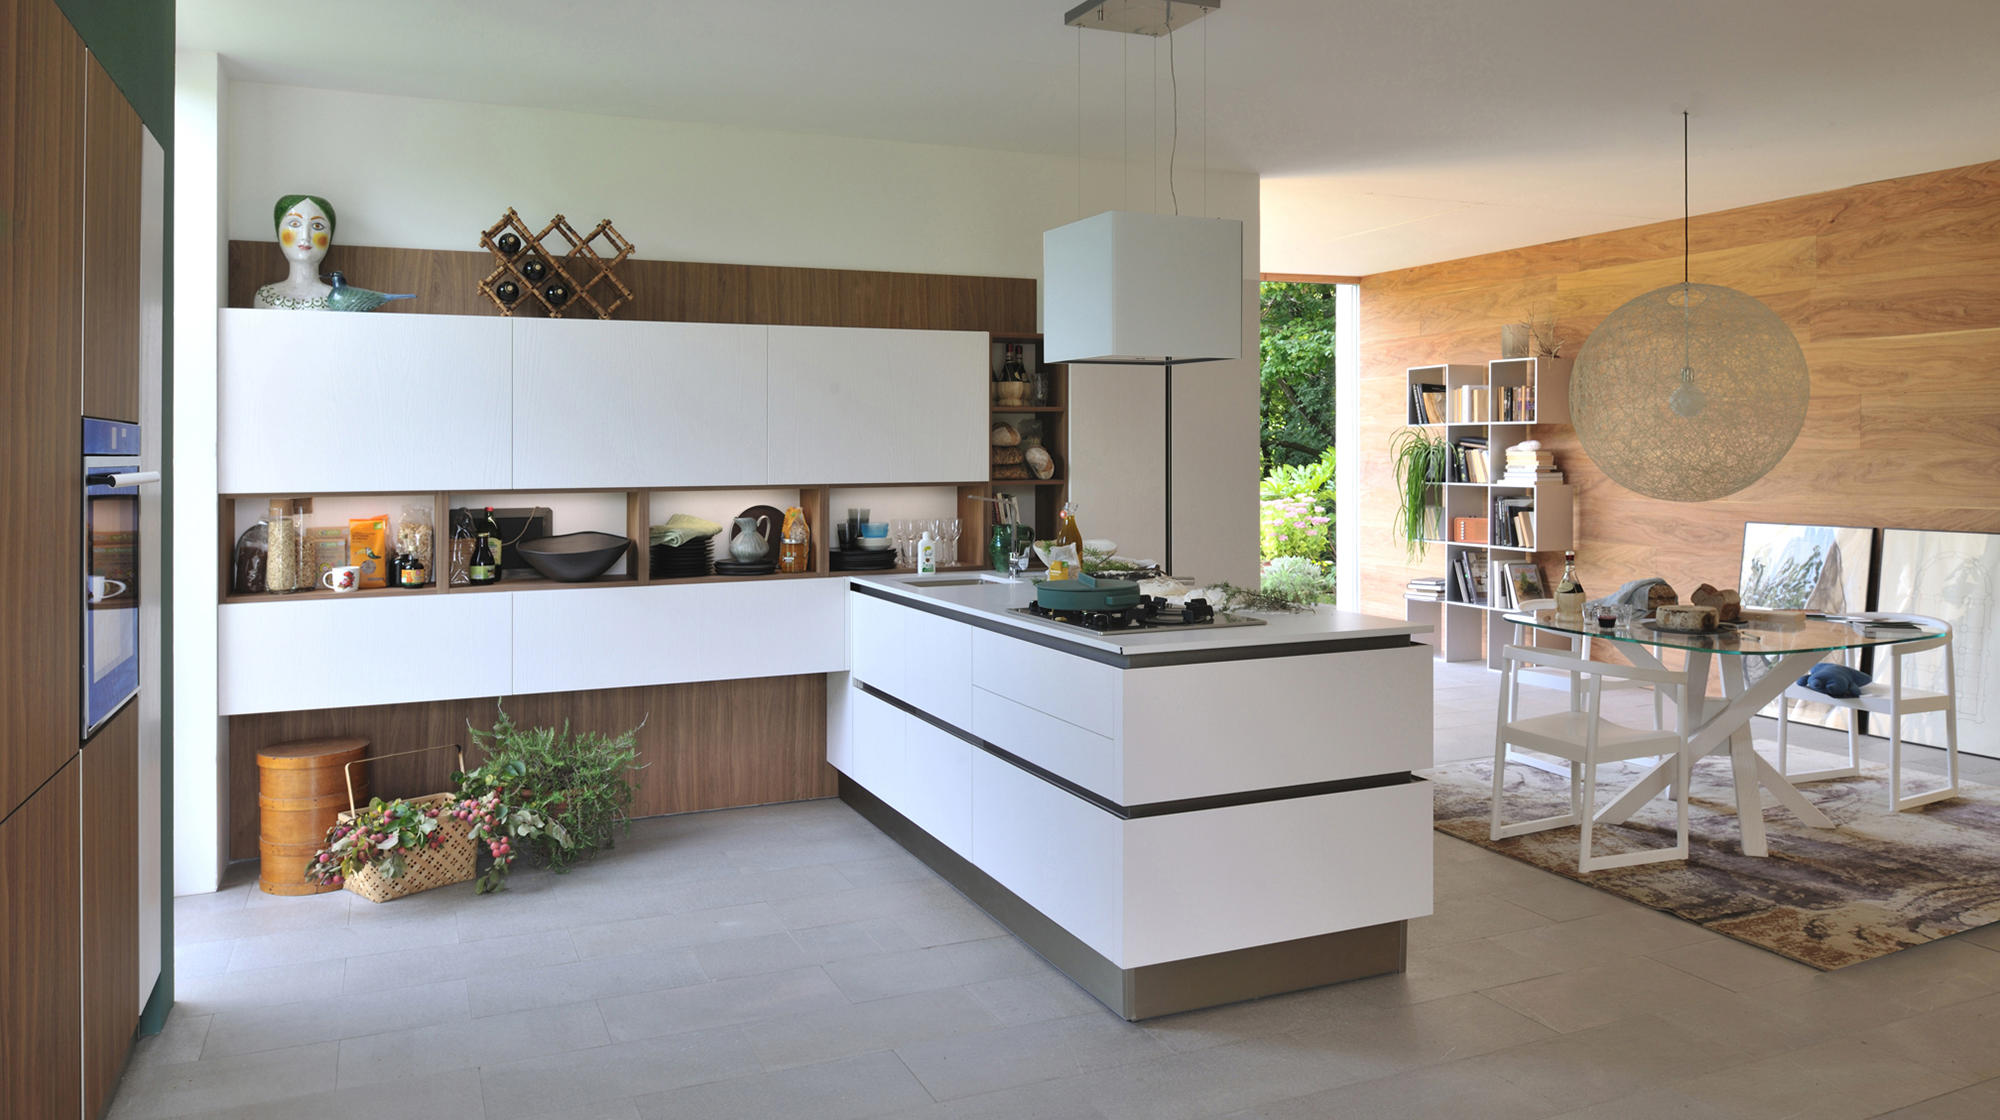 OYSTER PRO  Fitted kitchens from Veneta Cucine  Architonic